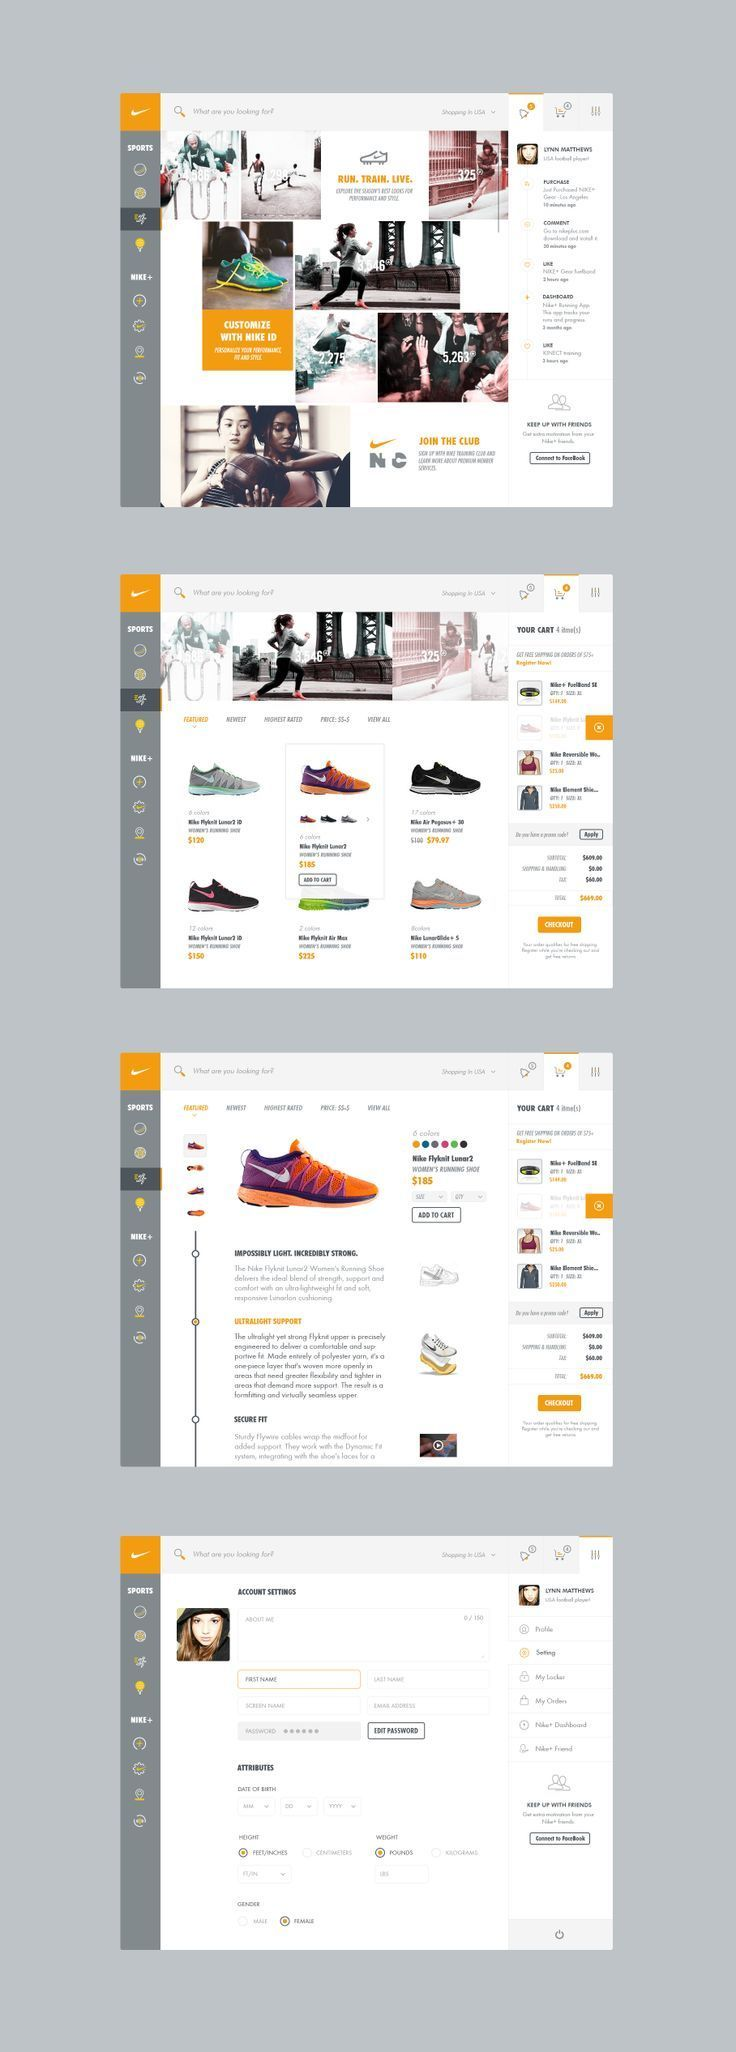 Web design inspiration look at these cool pins pinterest